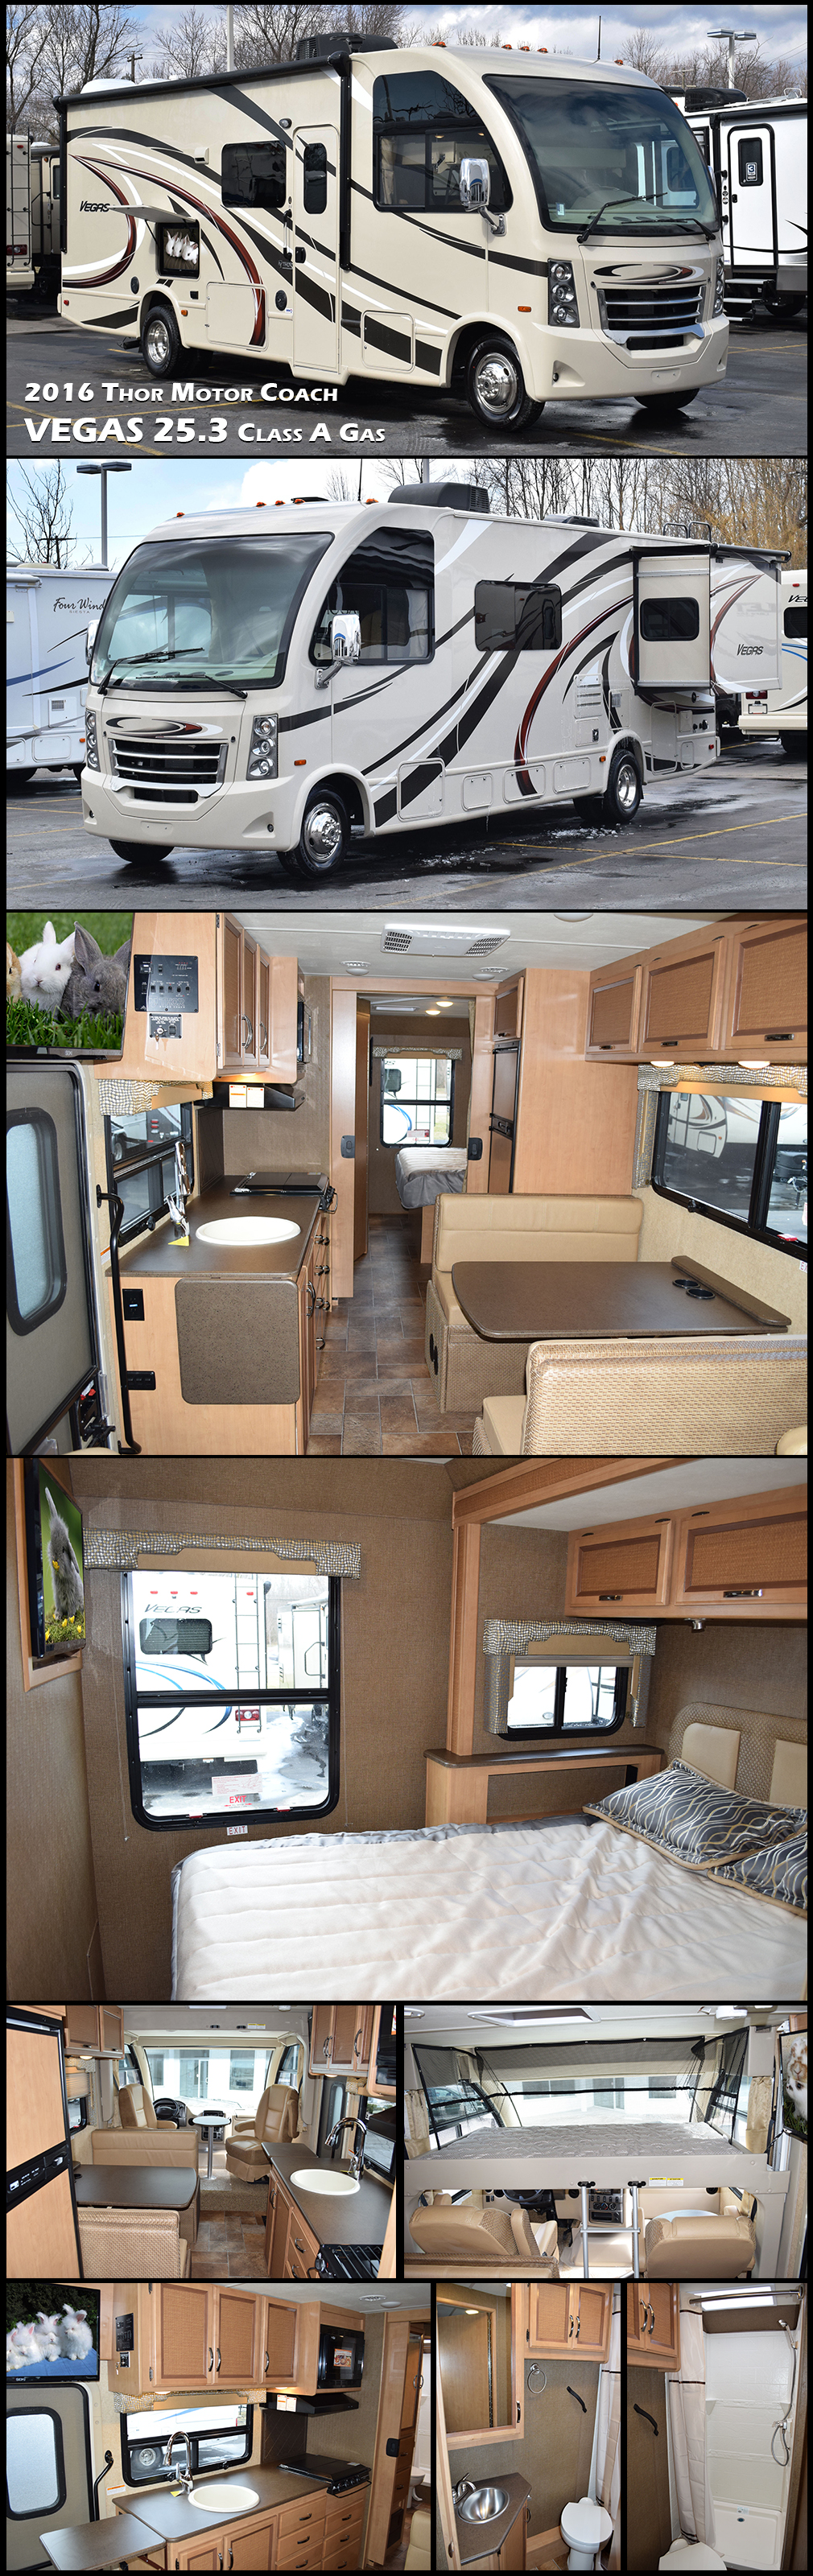 Small class c rv models quotes - New 2016 Winnebago Minnie Winnie 22r Motor Home Class C At General Rv North Canton Oh 133361 Class C Motorhomes Pinterest North Canton Rv And